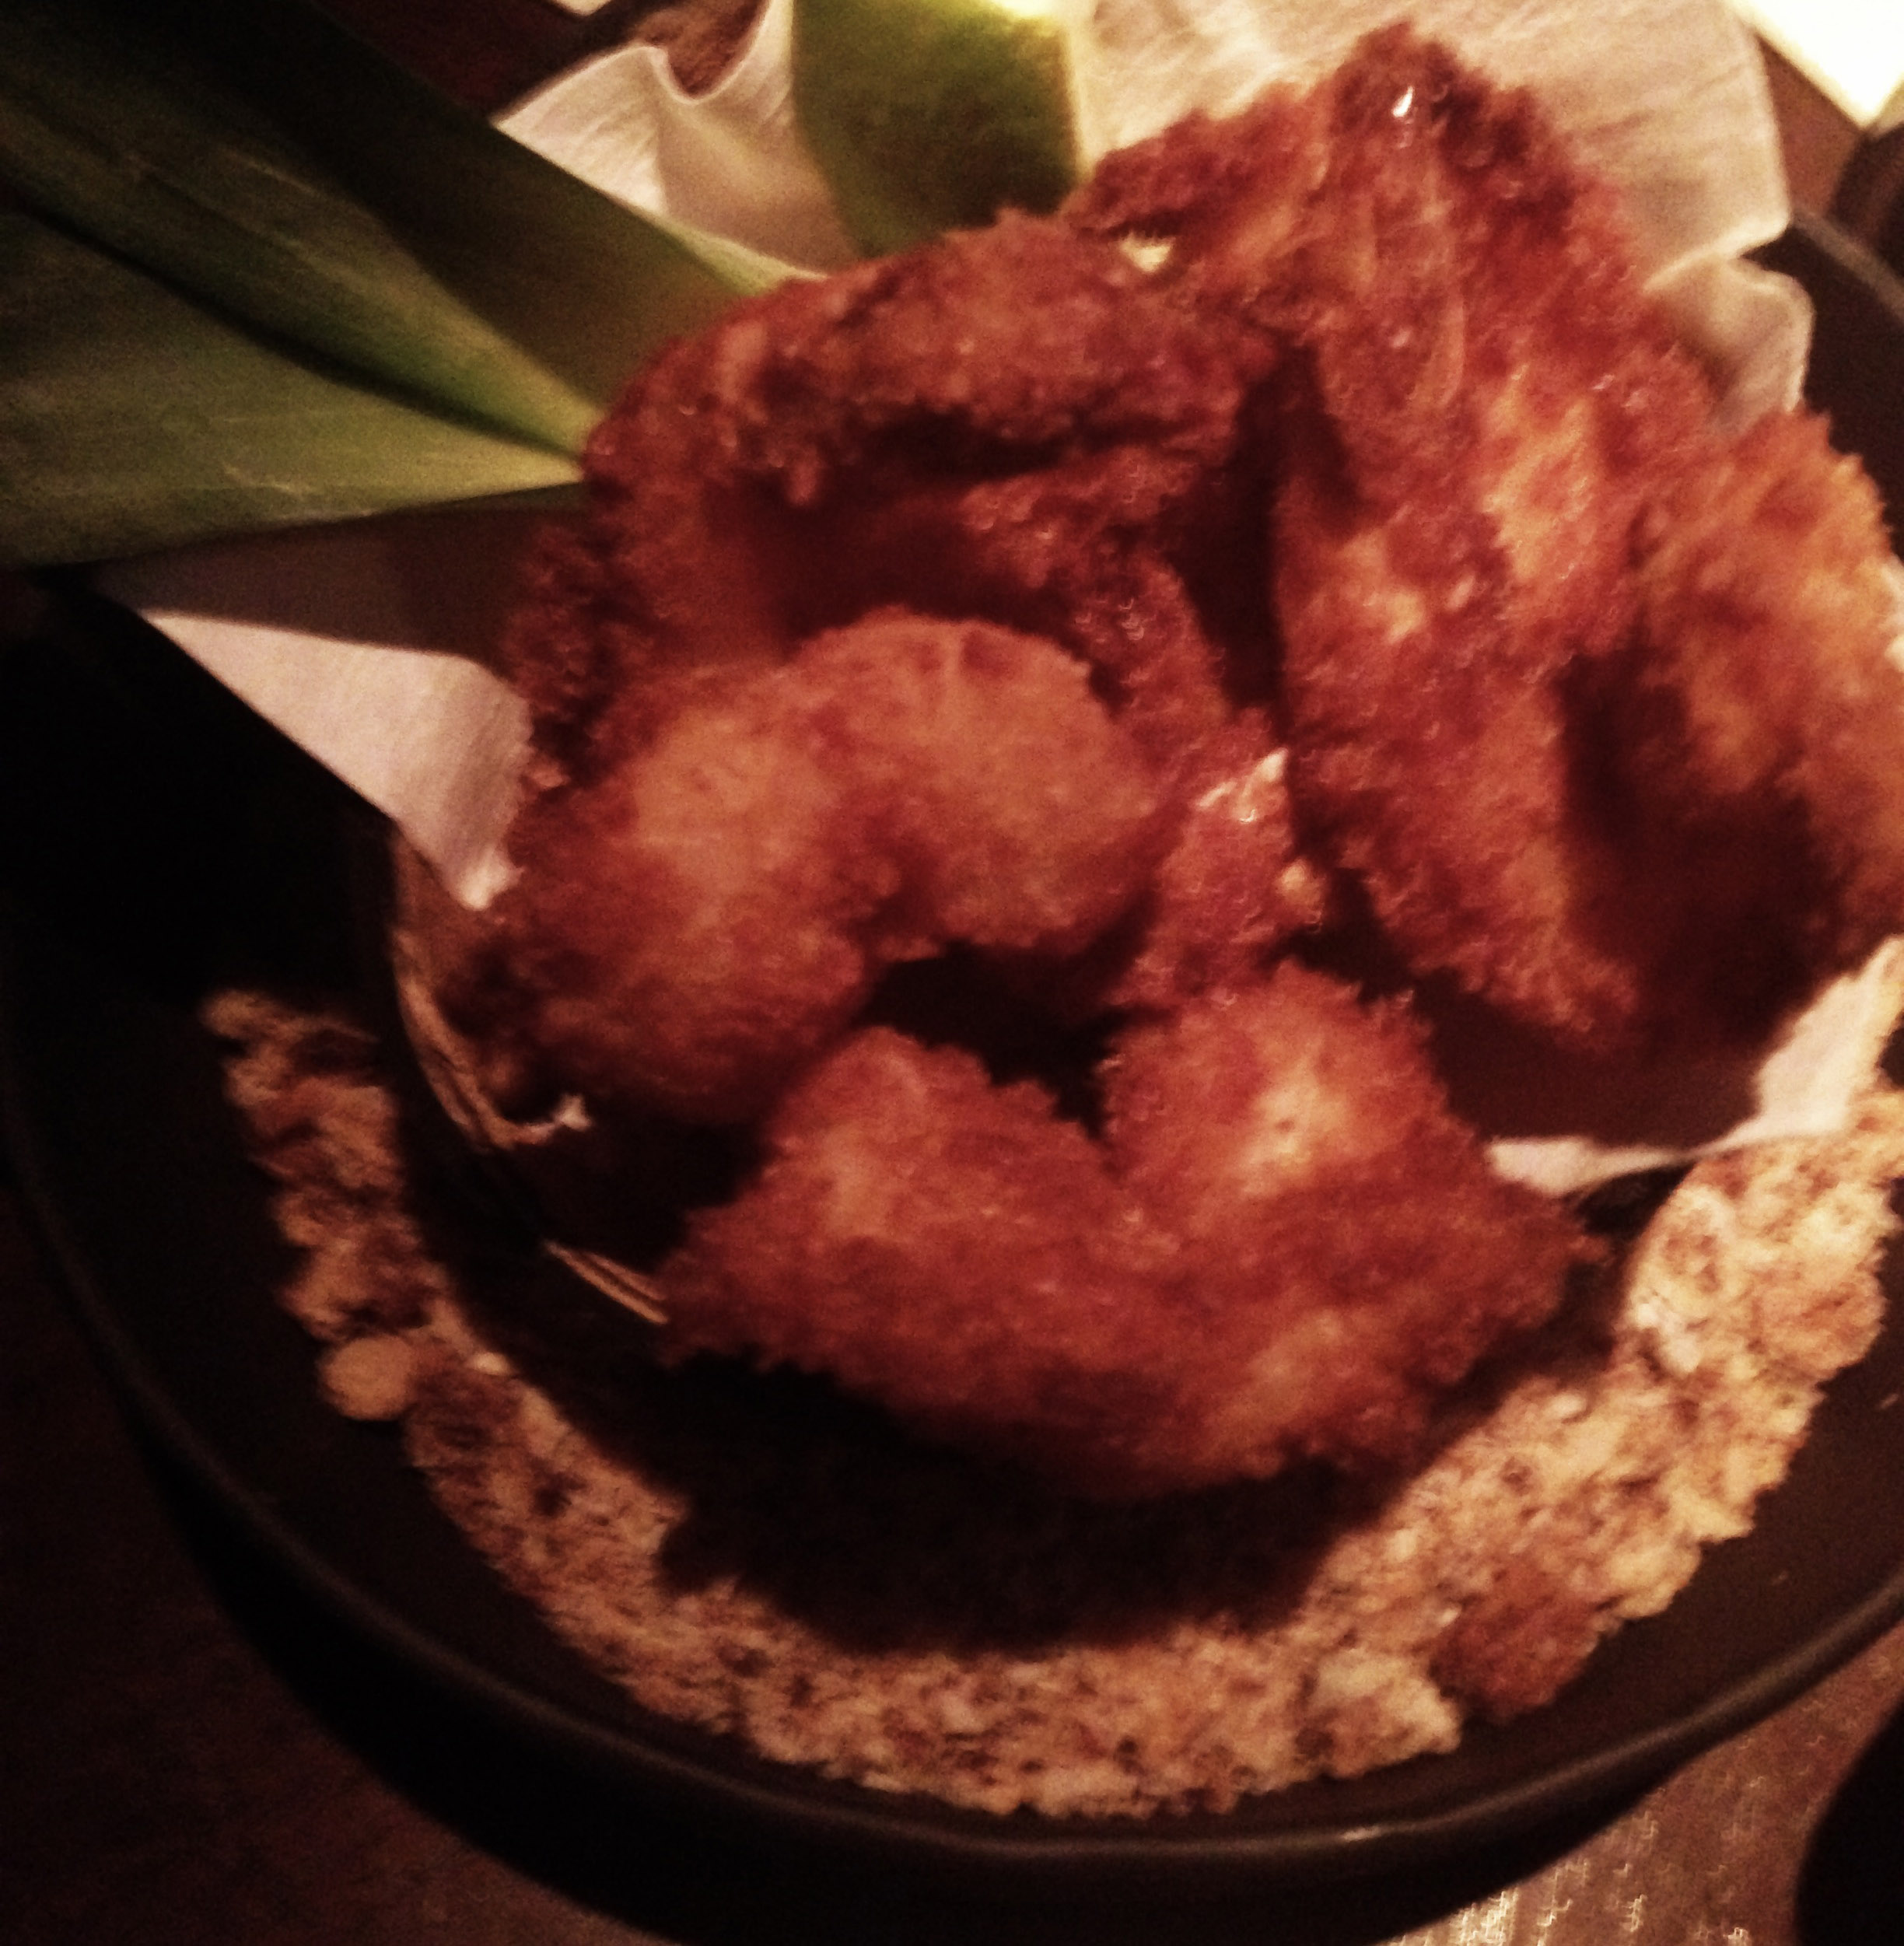 Coconut shrimp at Three Dots and a Dash